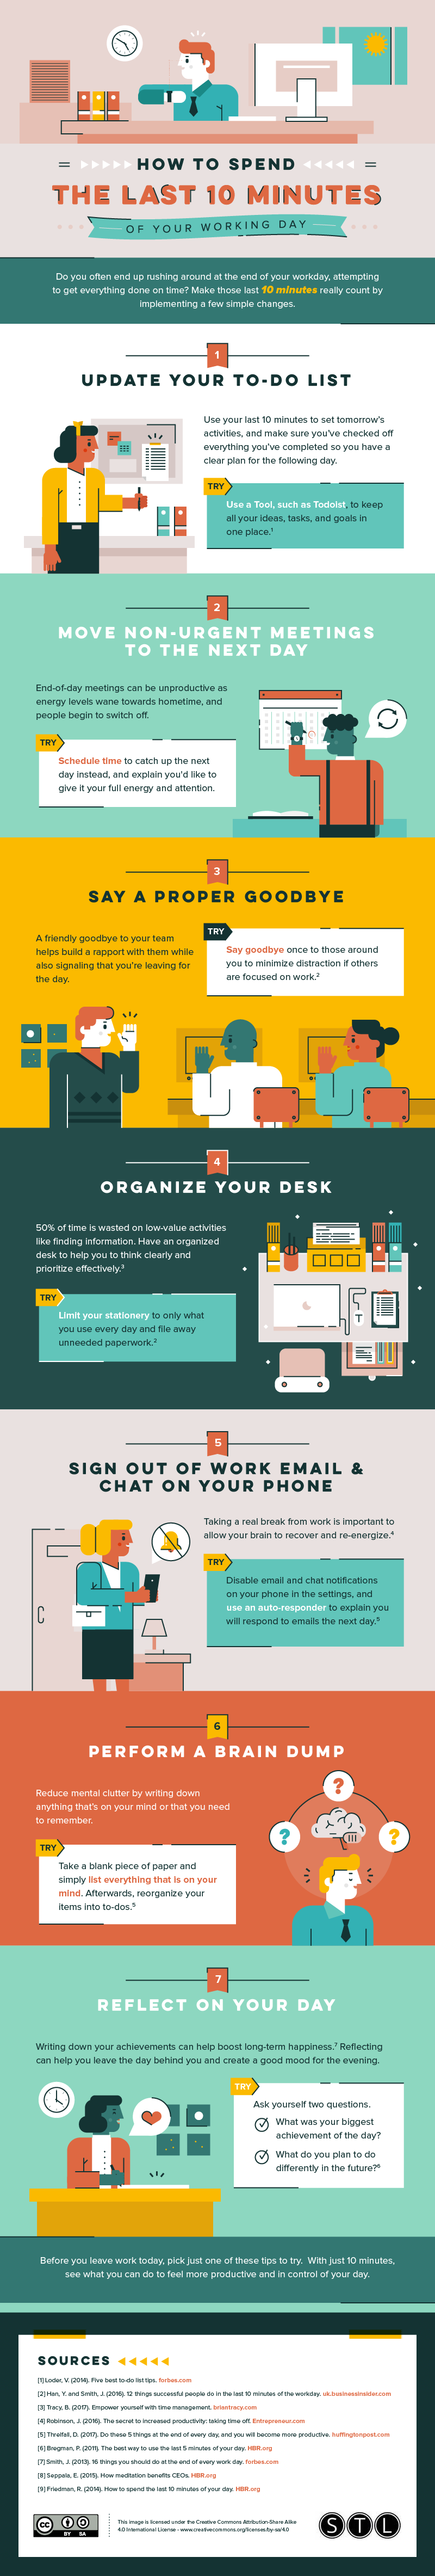 How to Spend The Last 10 Minutes of Your Working Day - #infographic